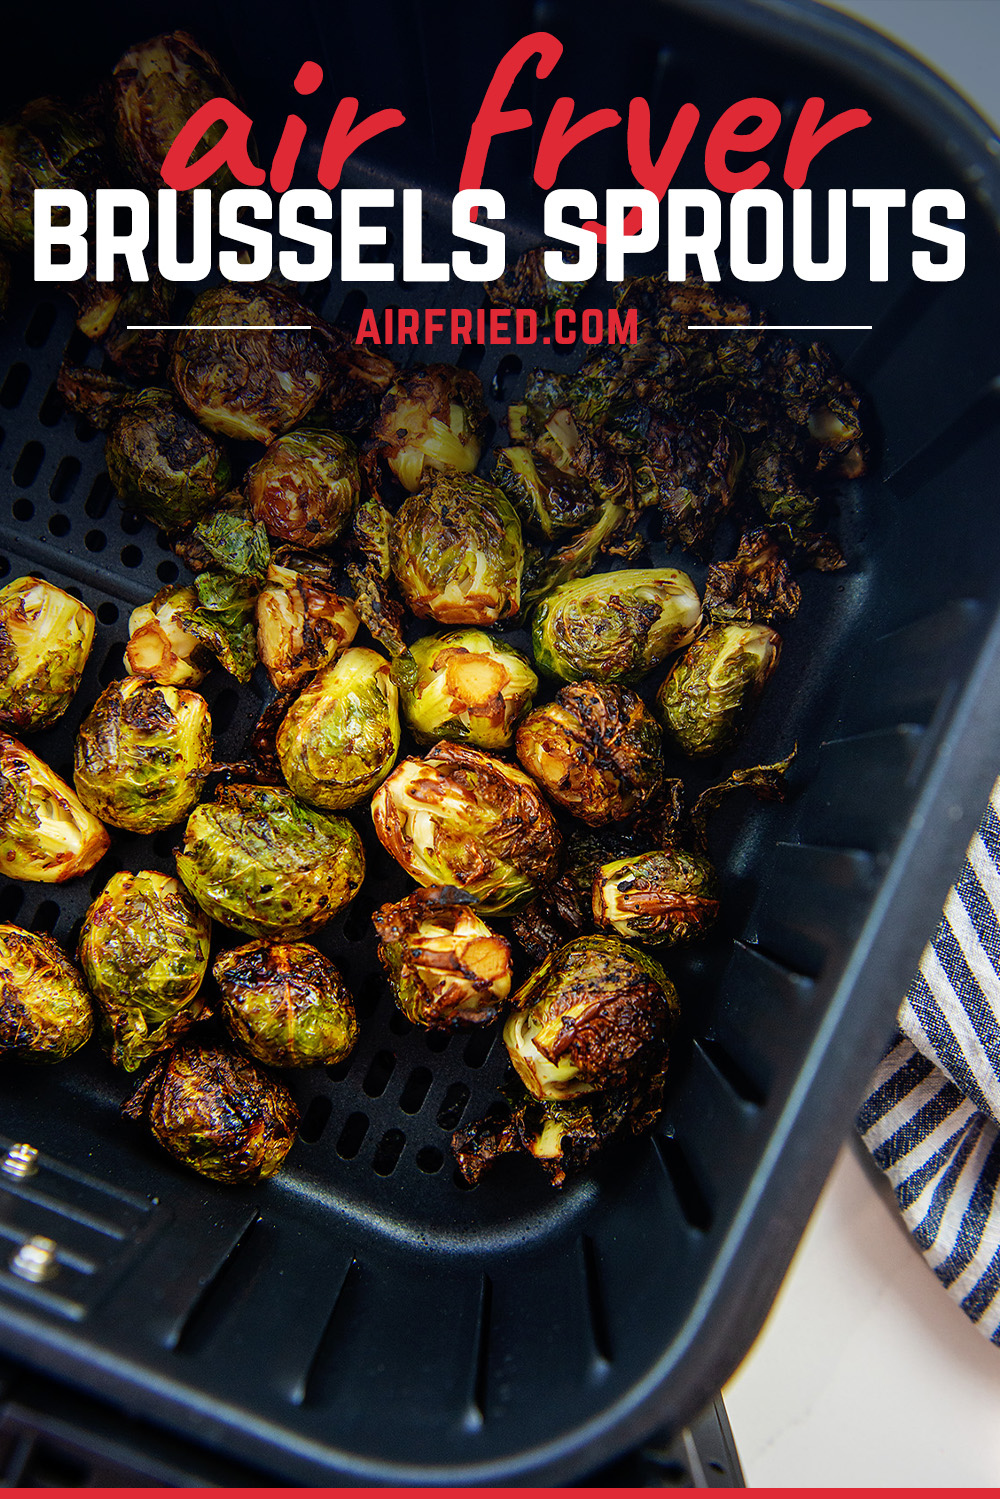 These healthy brussels sprouts are seasoned wonderfully with an Asian inspired blend of flavors!